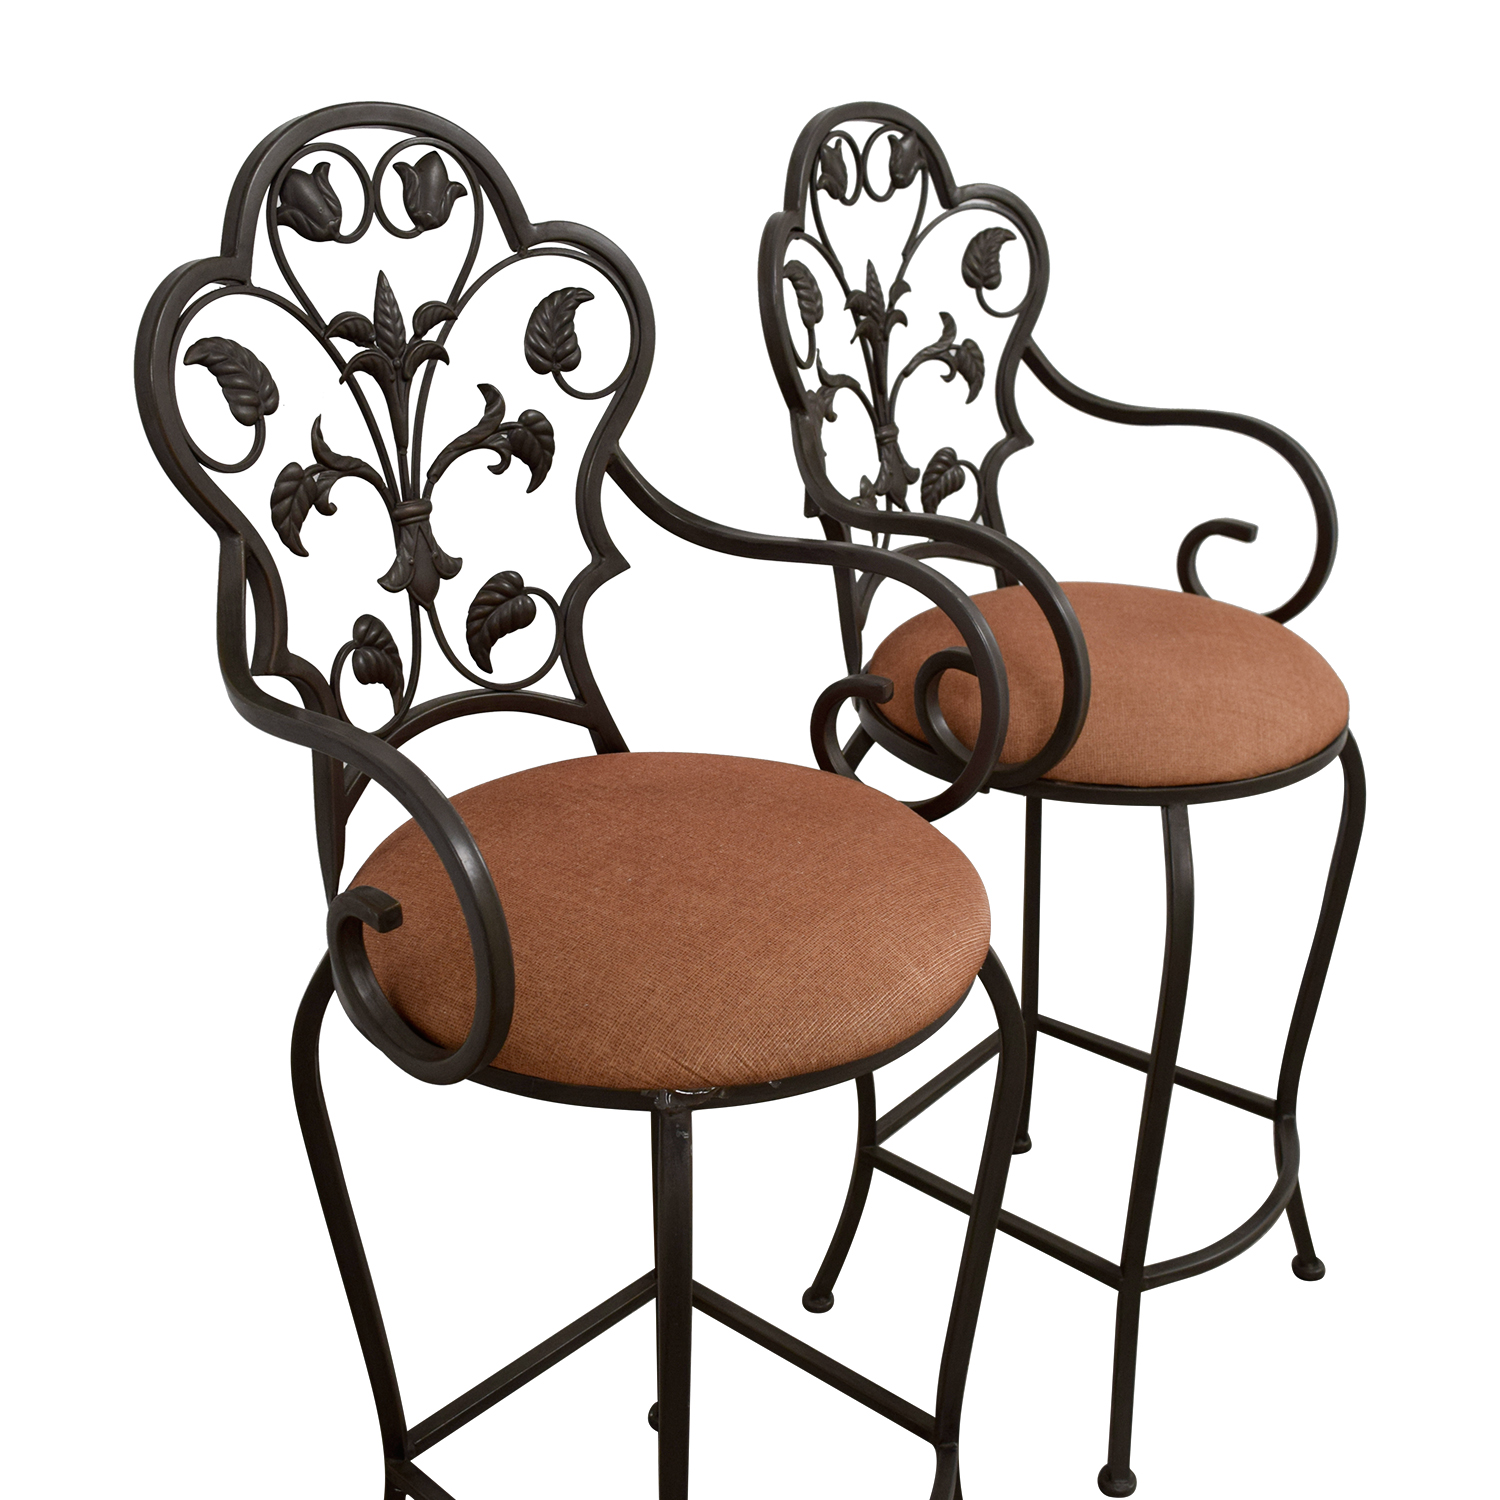 Peachy 70 Off Scrolled Metal Folding Back Bar Stools Chairs Alphanode Cool Chair Designs And Ideas Alphanodeonline